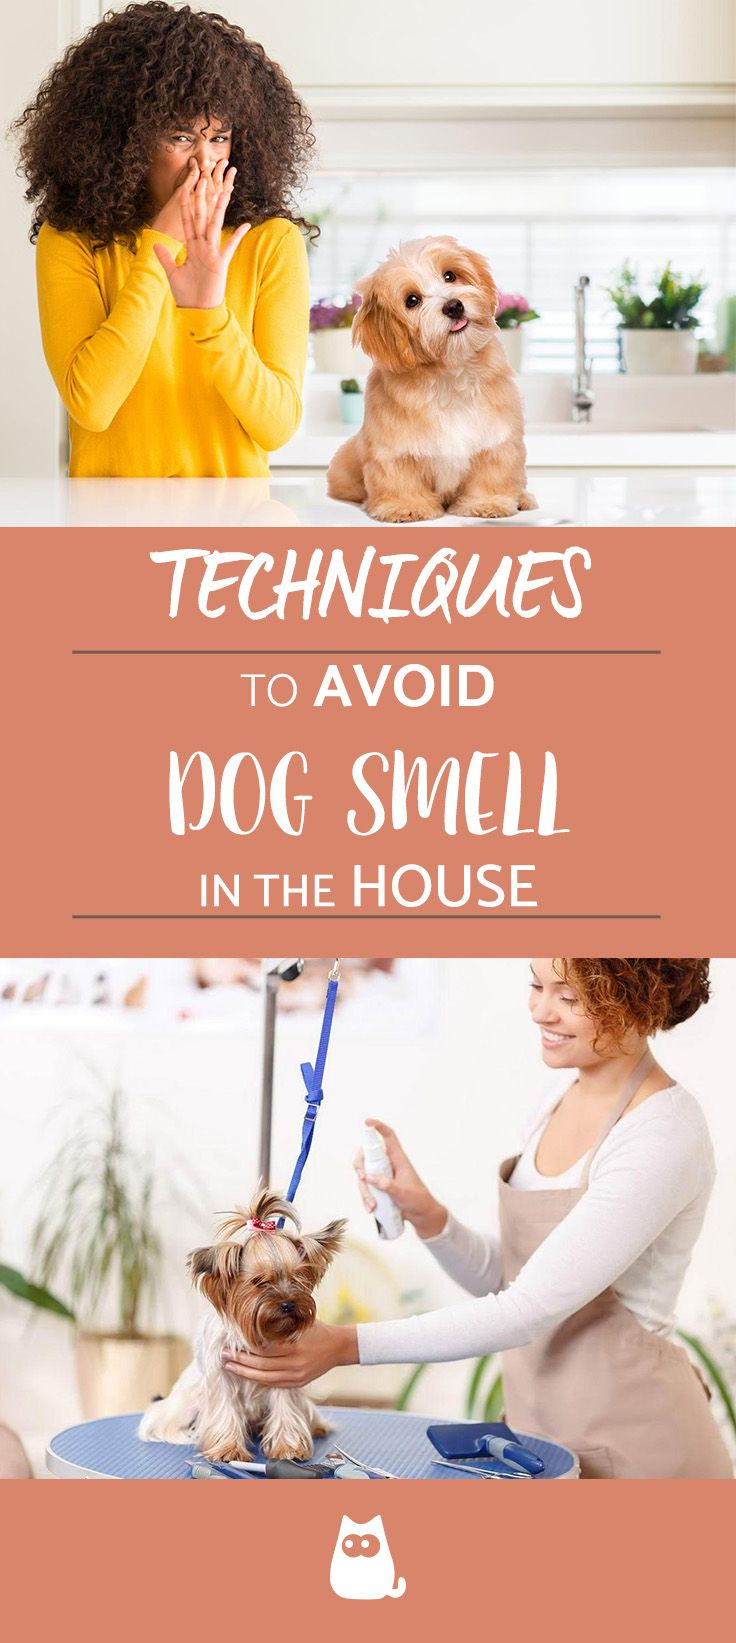 How To Get Rid Of Cat Urine Smell From Apartment Bing Images Stinky Dog Dog Smells Smelly Dog